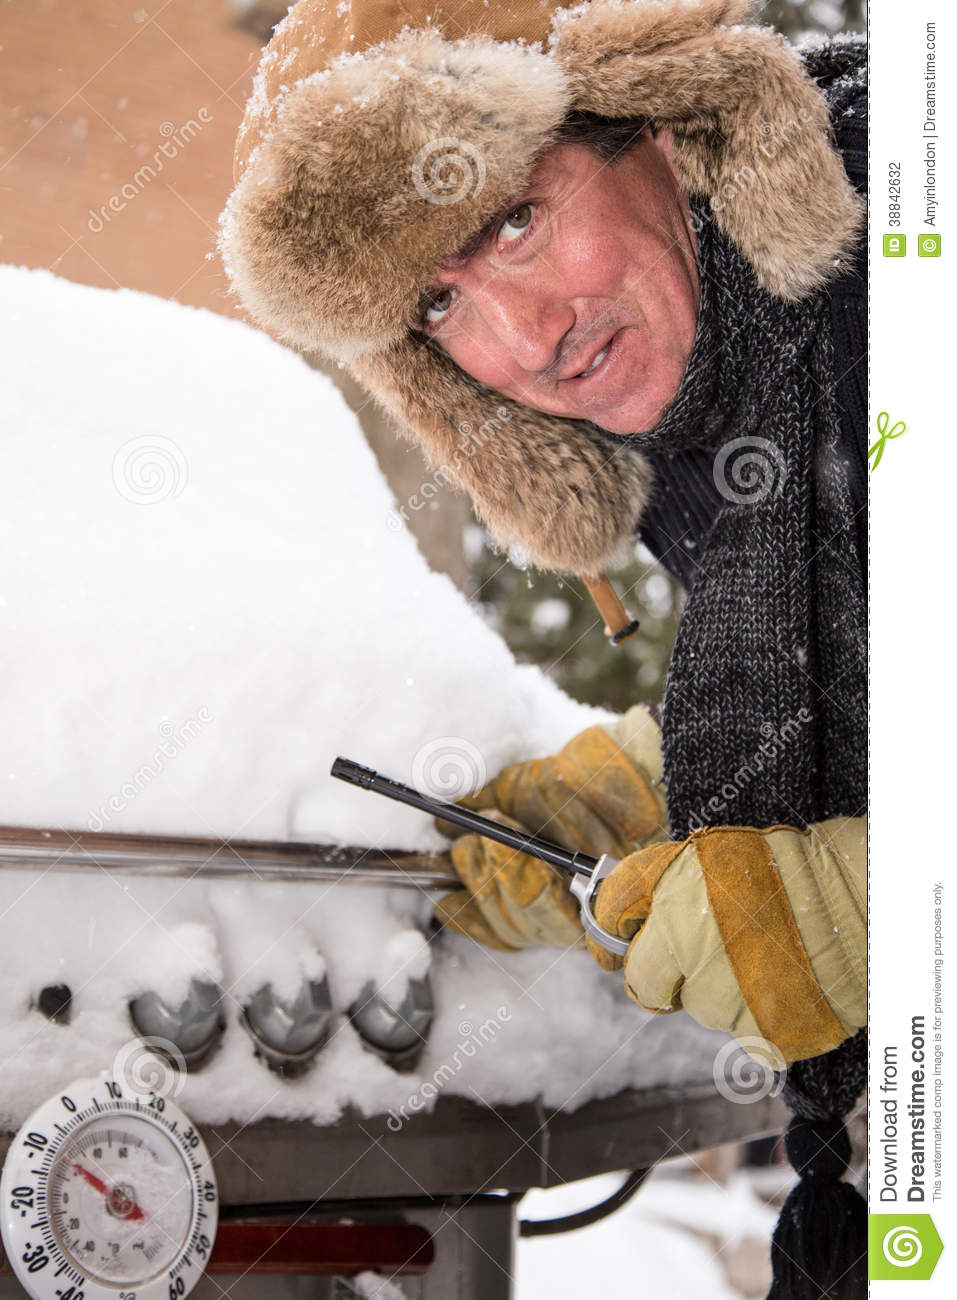 Unhappy Barbeque Guy In Snow Stock Photo